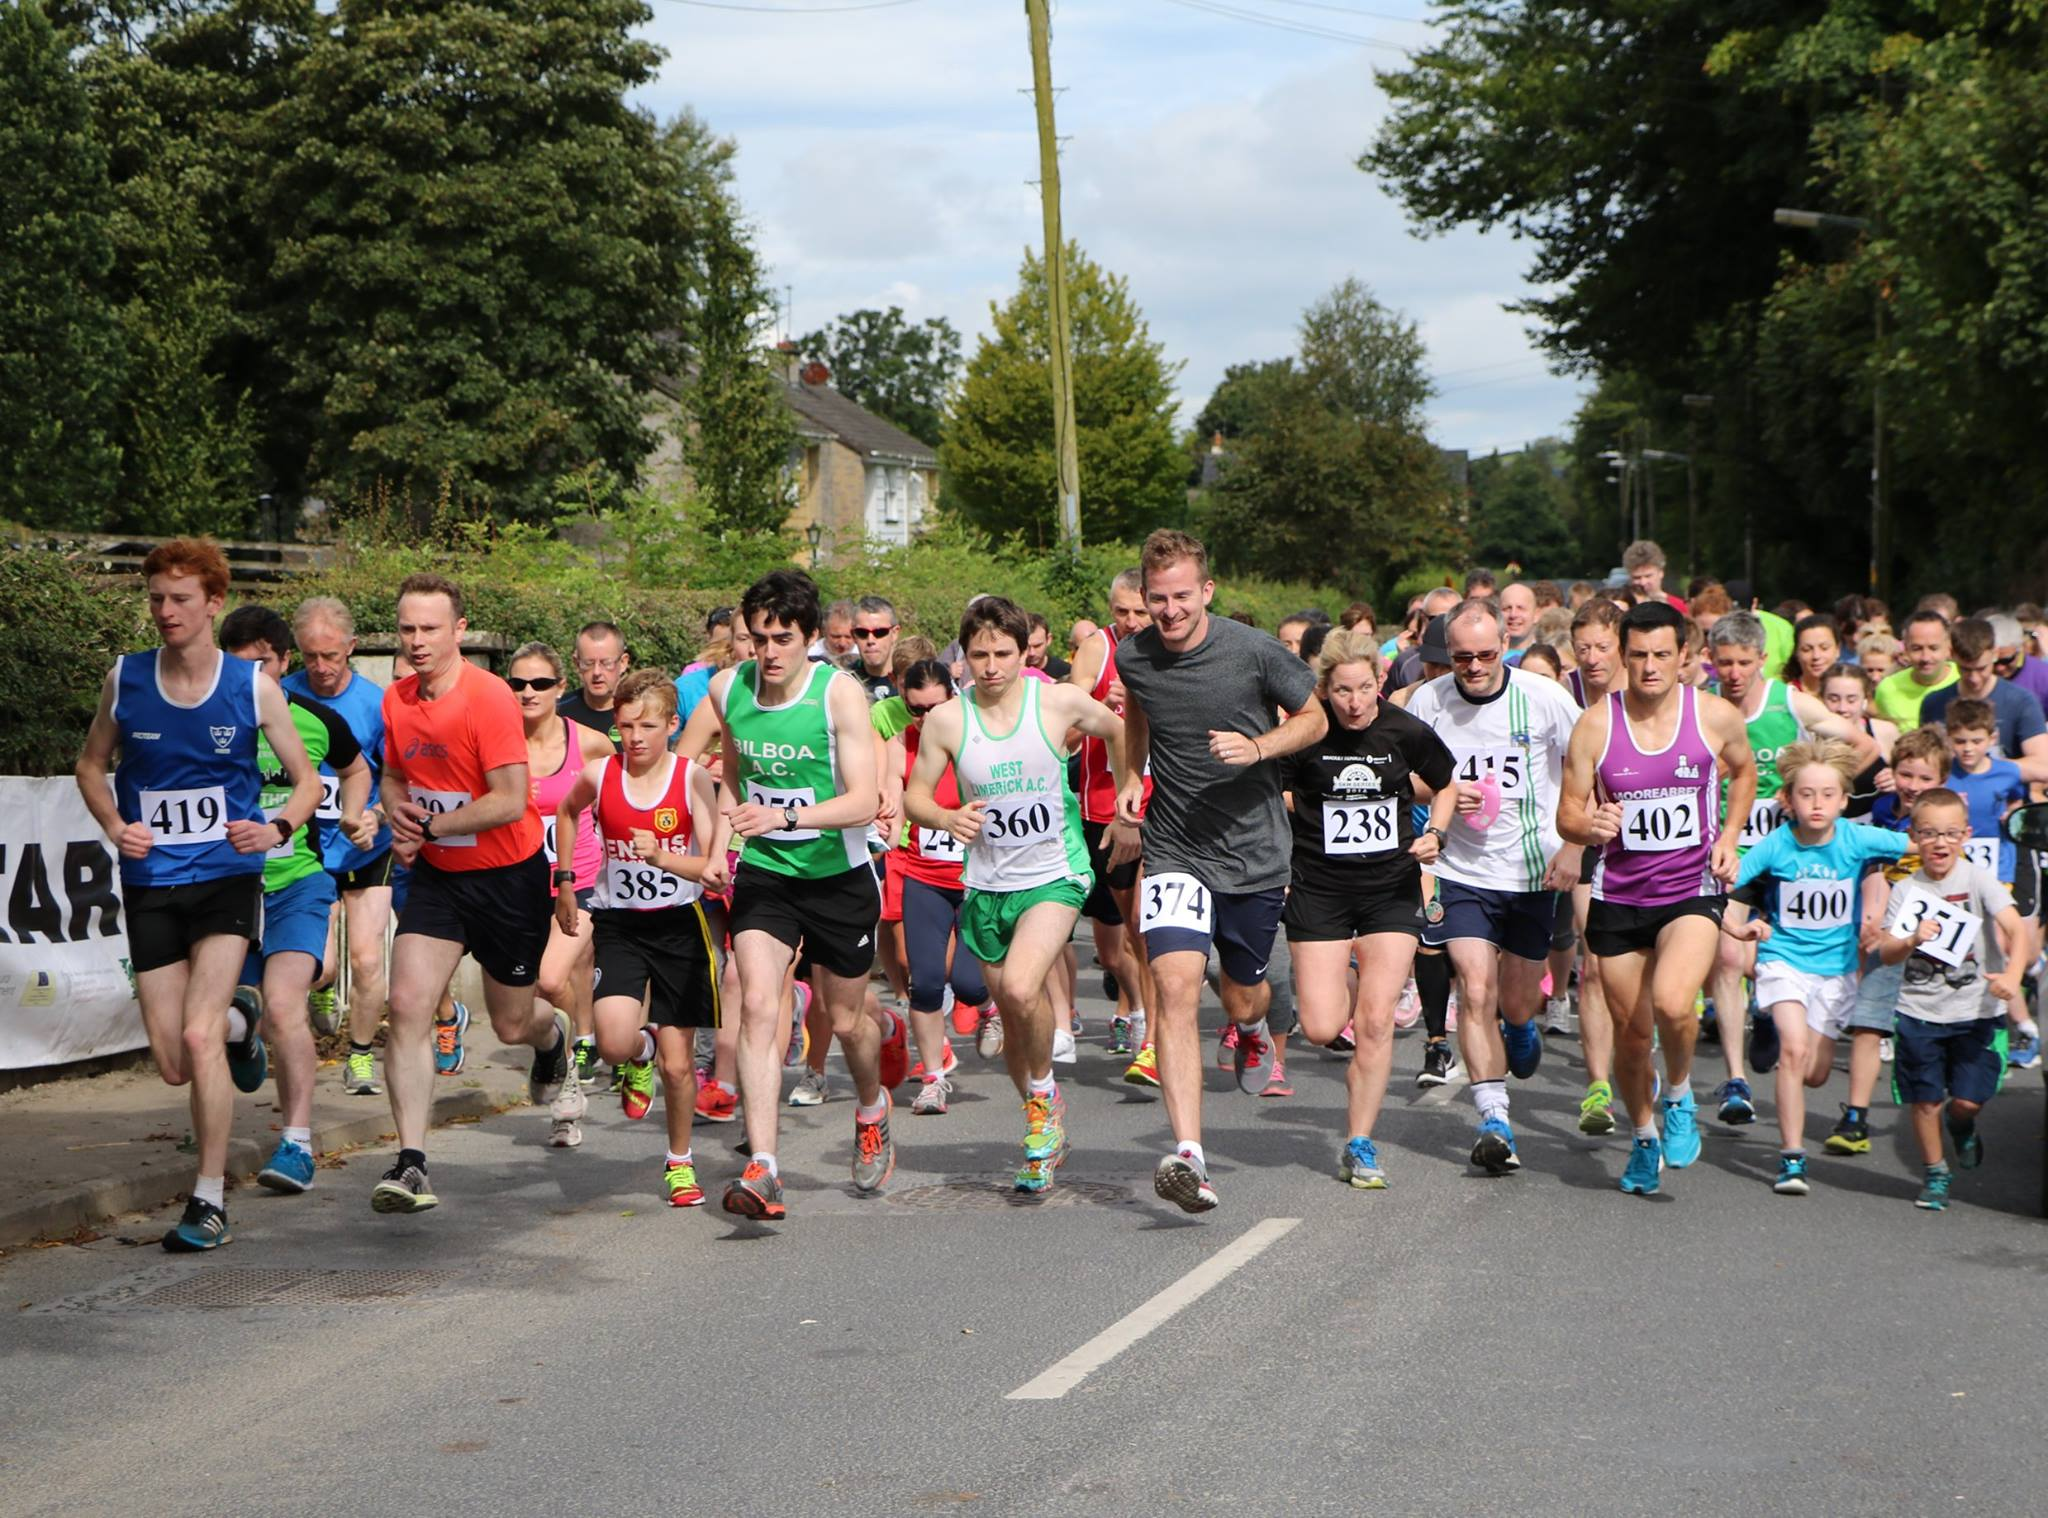 Murroe 5k Race/Walk  – Saturday 27th August 2016